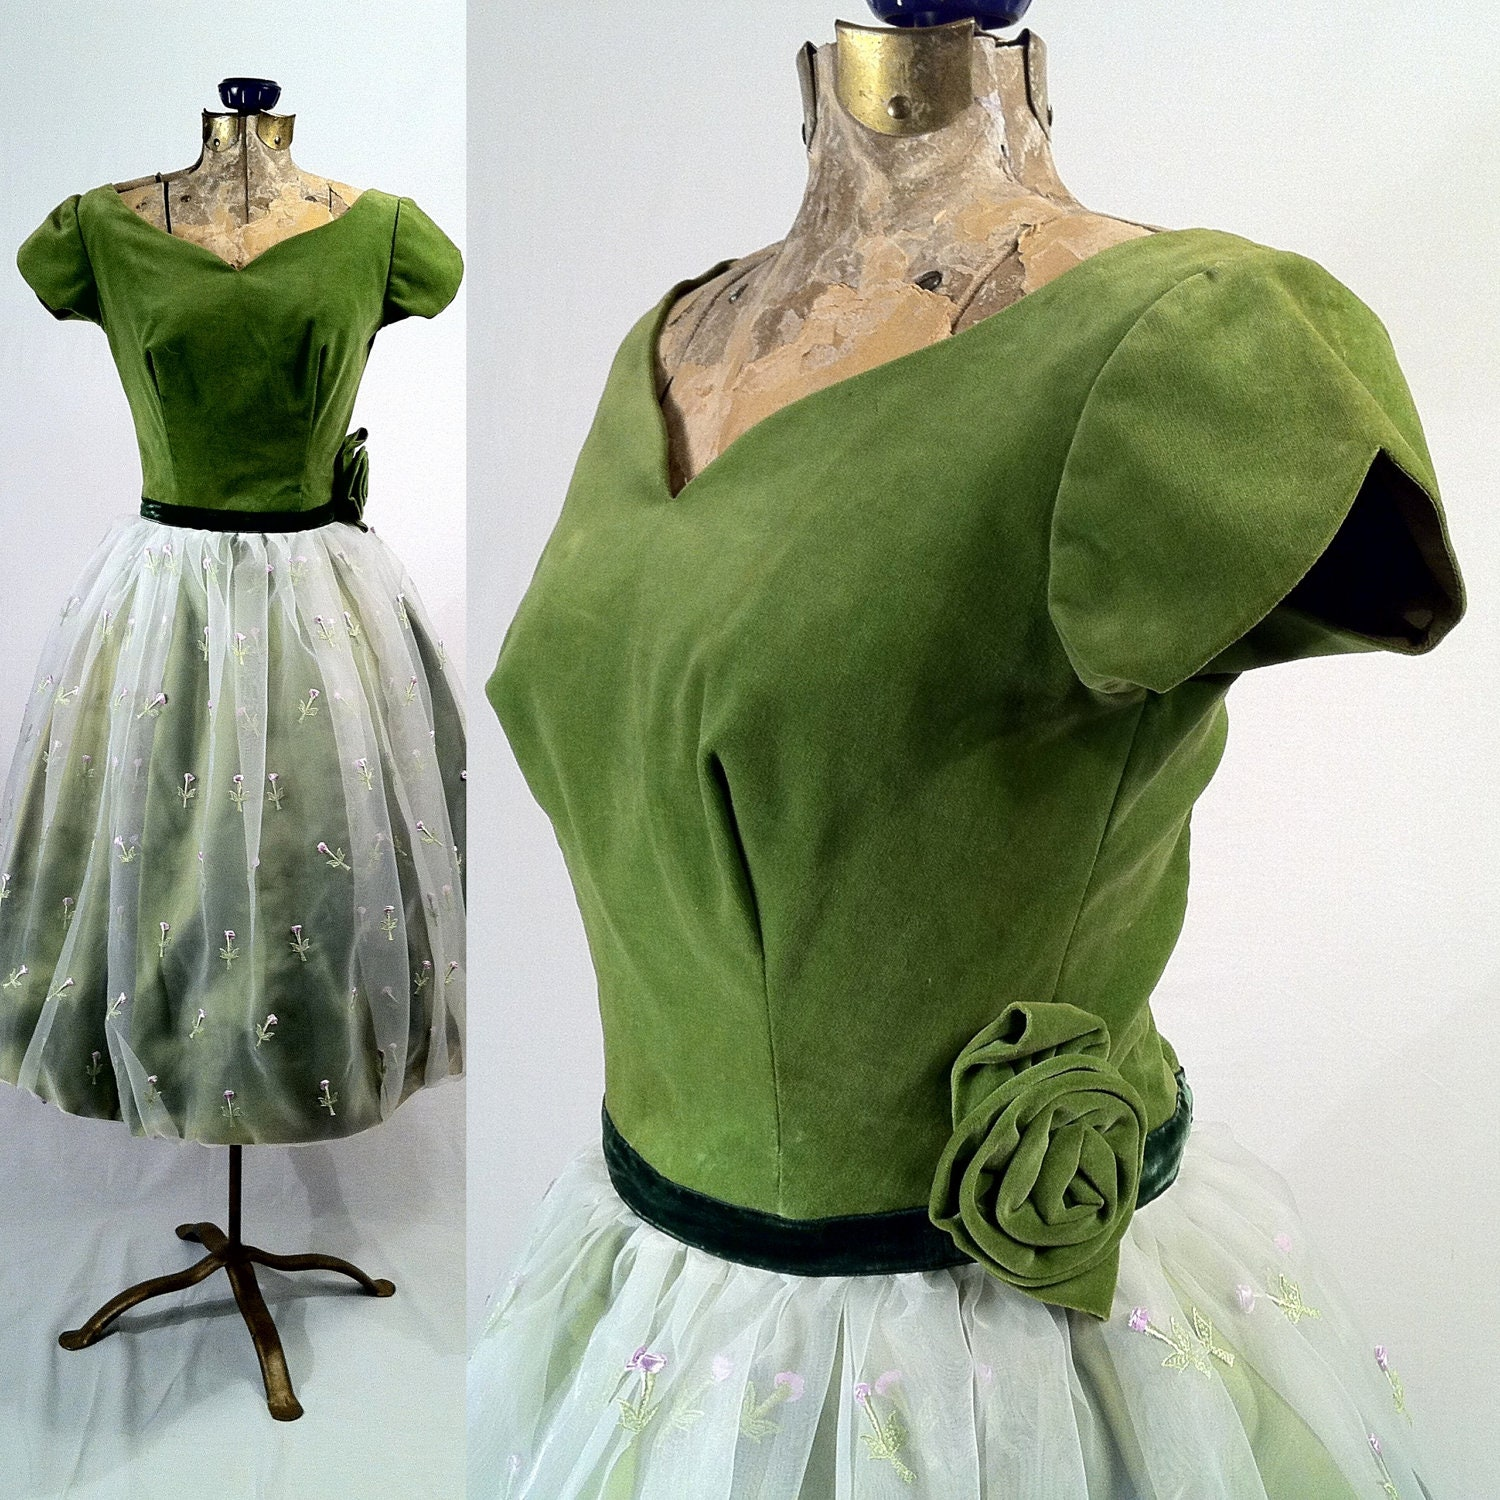 Vintage 1950s Green Velvet And White Organza Dress Upcycled